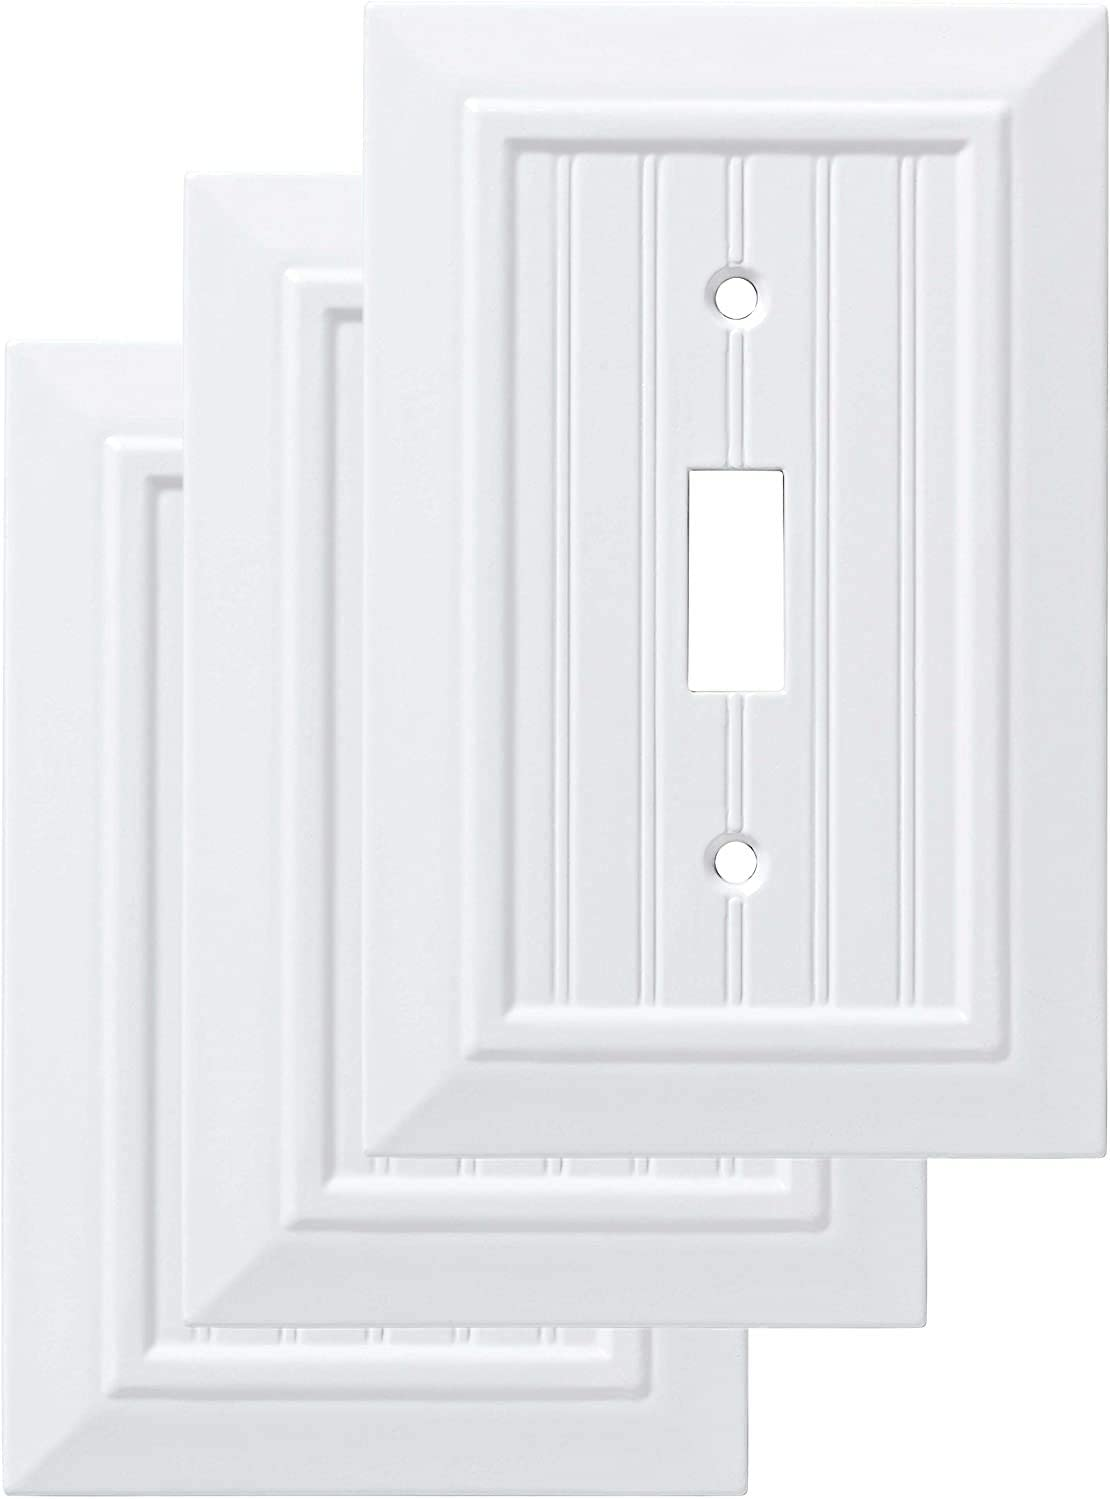 Franklin Brass W35265V-PW-C Classic Beadboard Single Switch Wall Plate/Switch Plate/Cover (3 Pack), Pure White